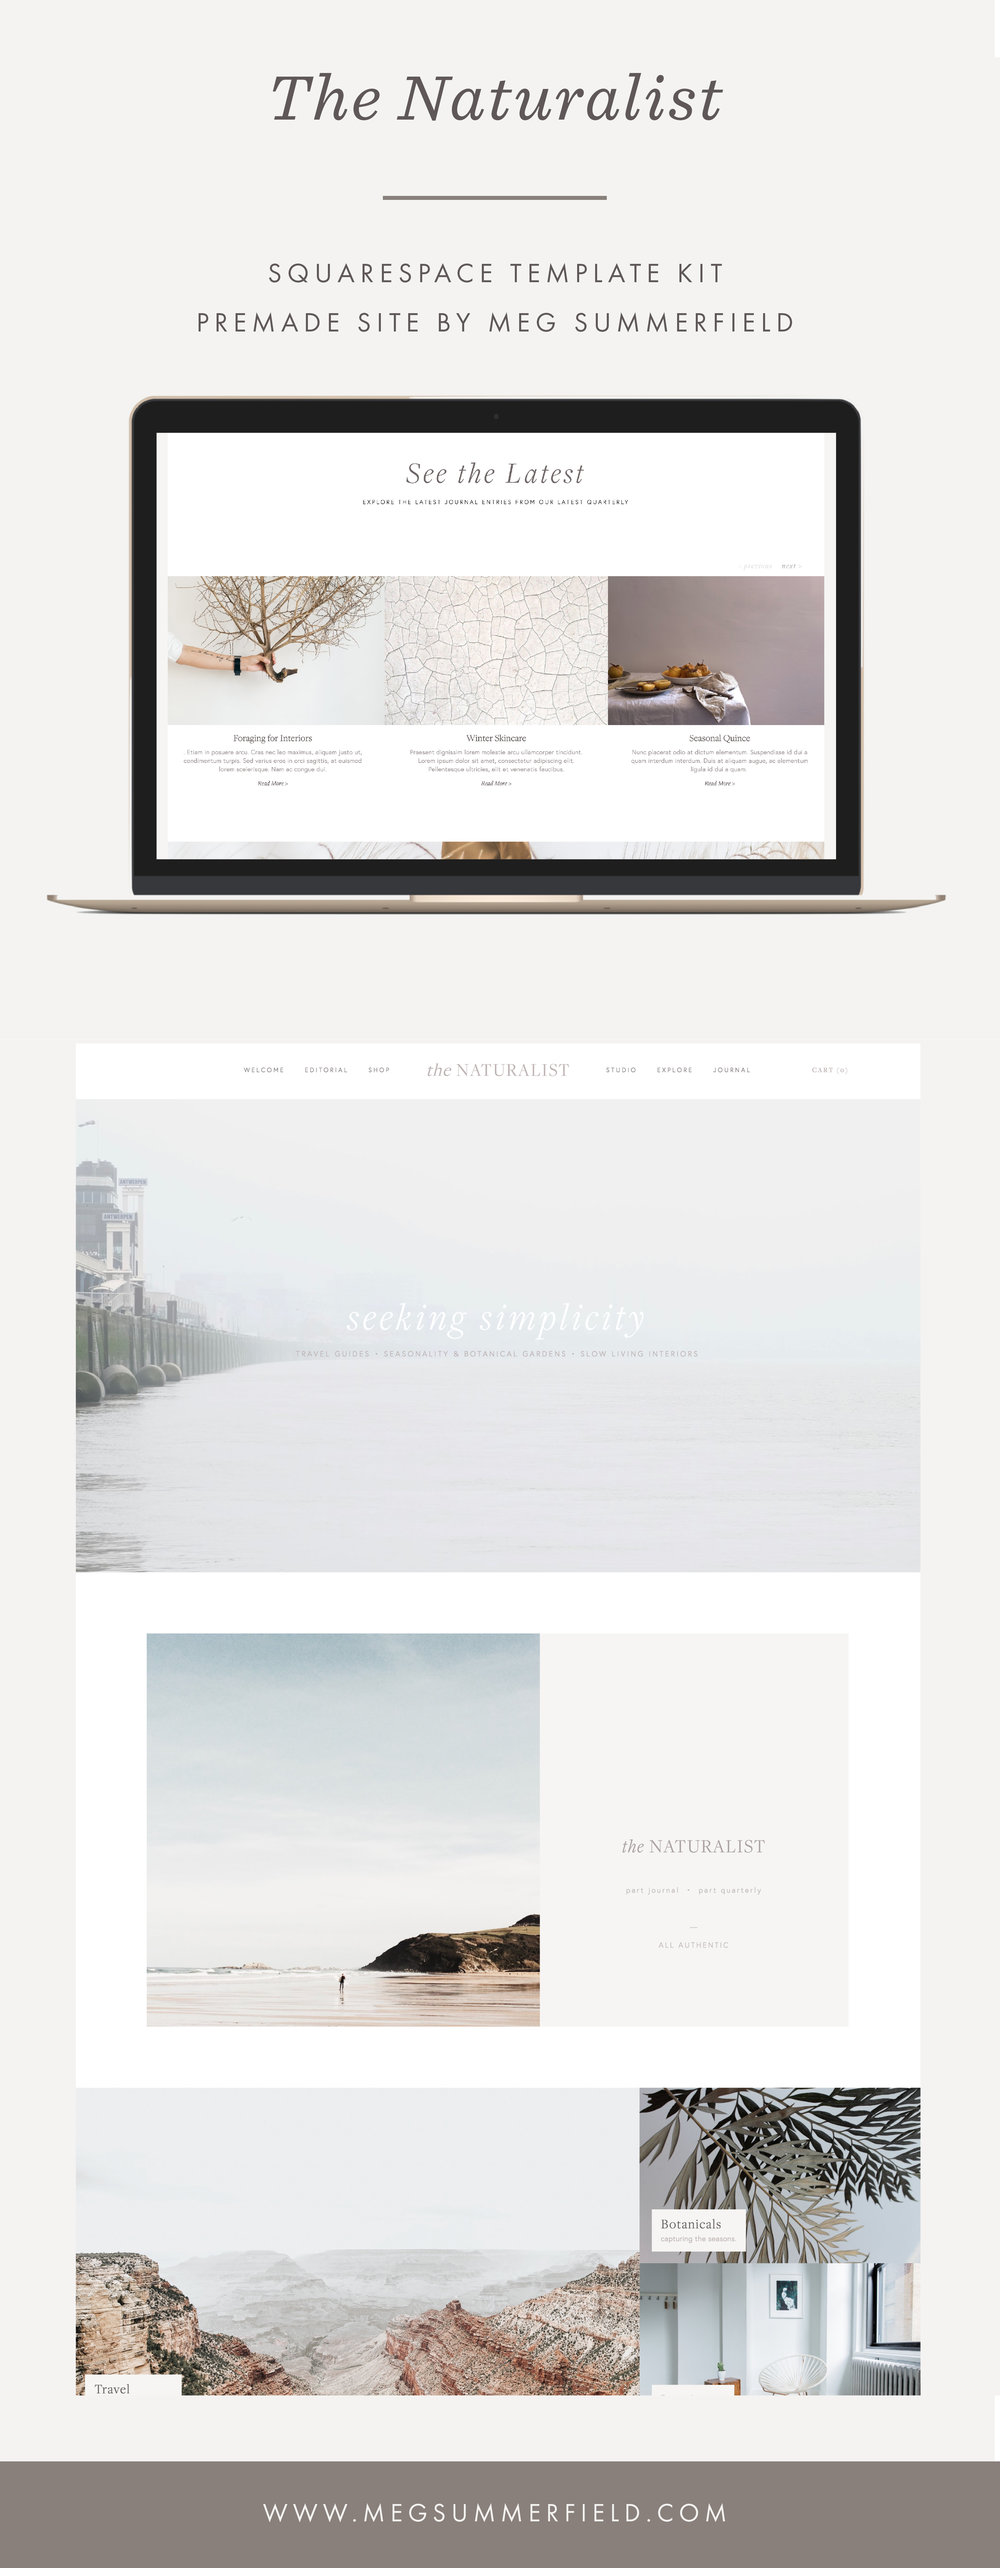 Premade Squarespace Site Kit for Entrepreneurs and Creatives by Meg Summerfield